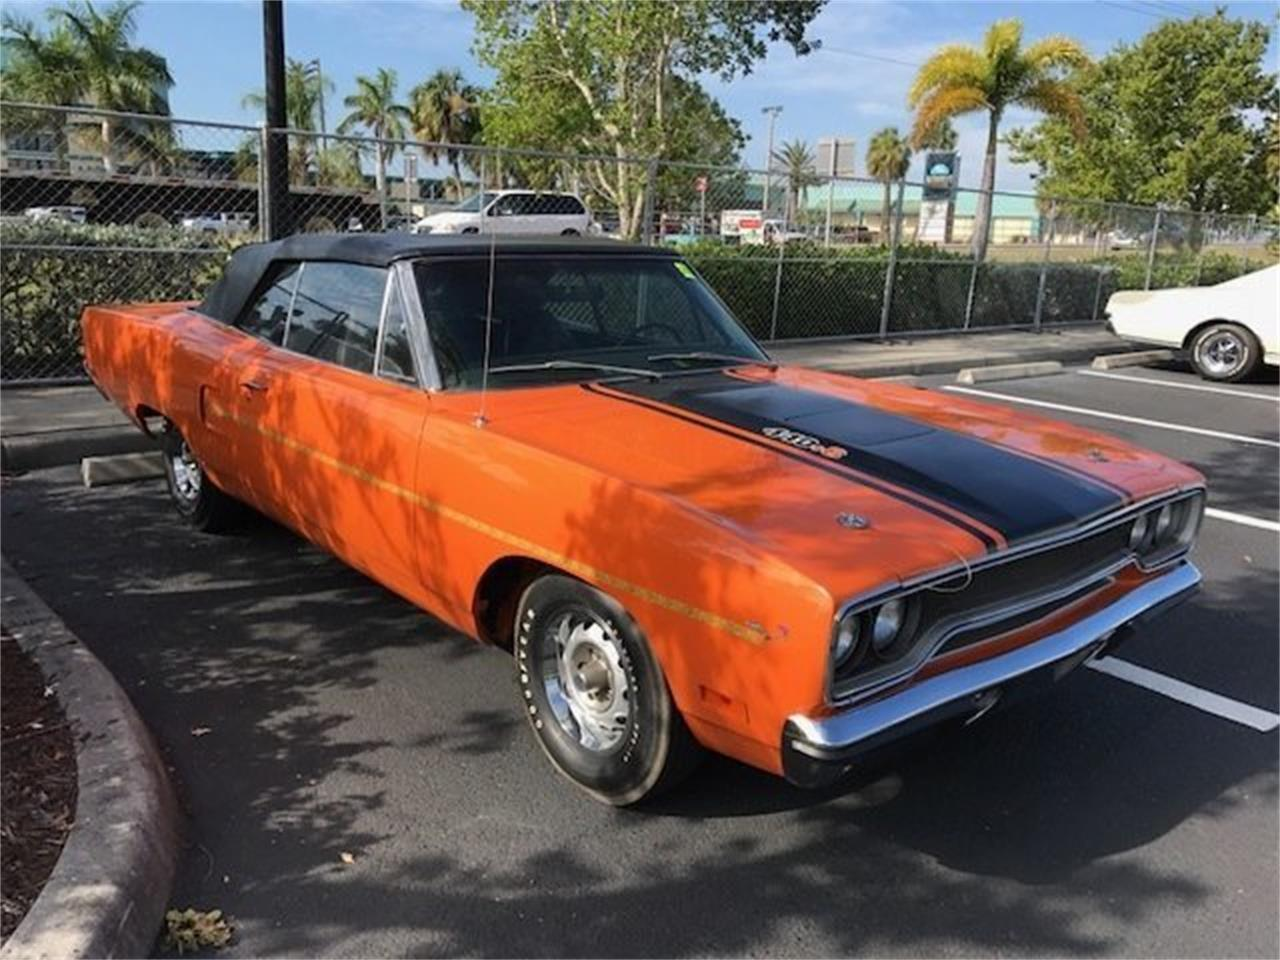 Large Picture of Classic 1970 Road Runner Convertible located in Punta Gorda Florida Auction Vehicle Offered by Premier Auction Group - MSSF